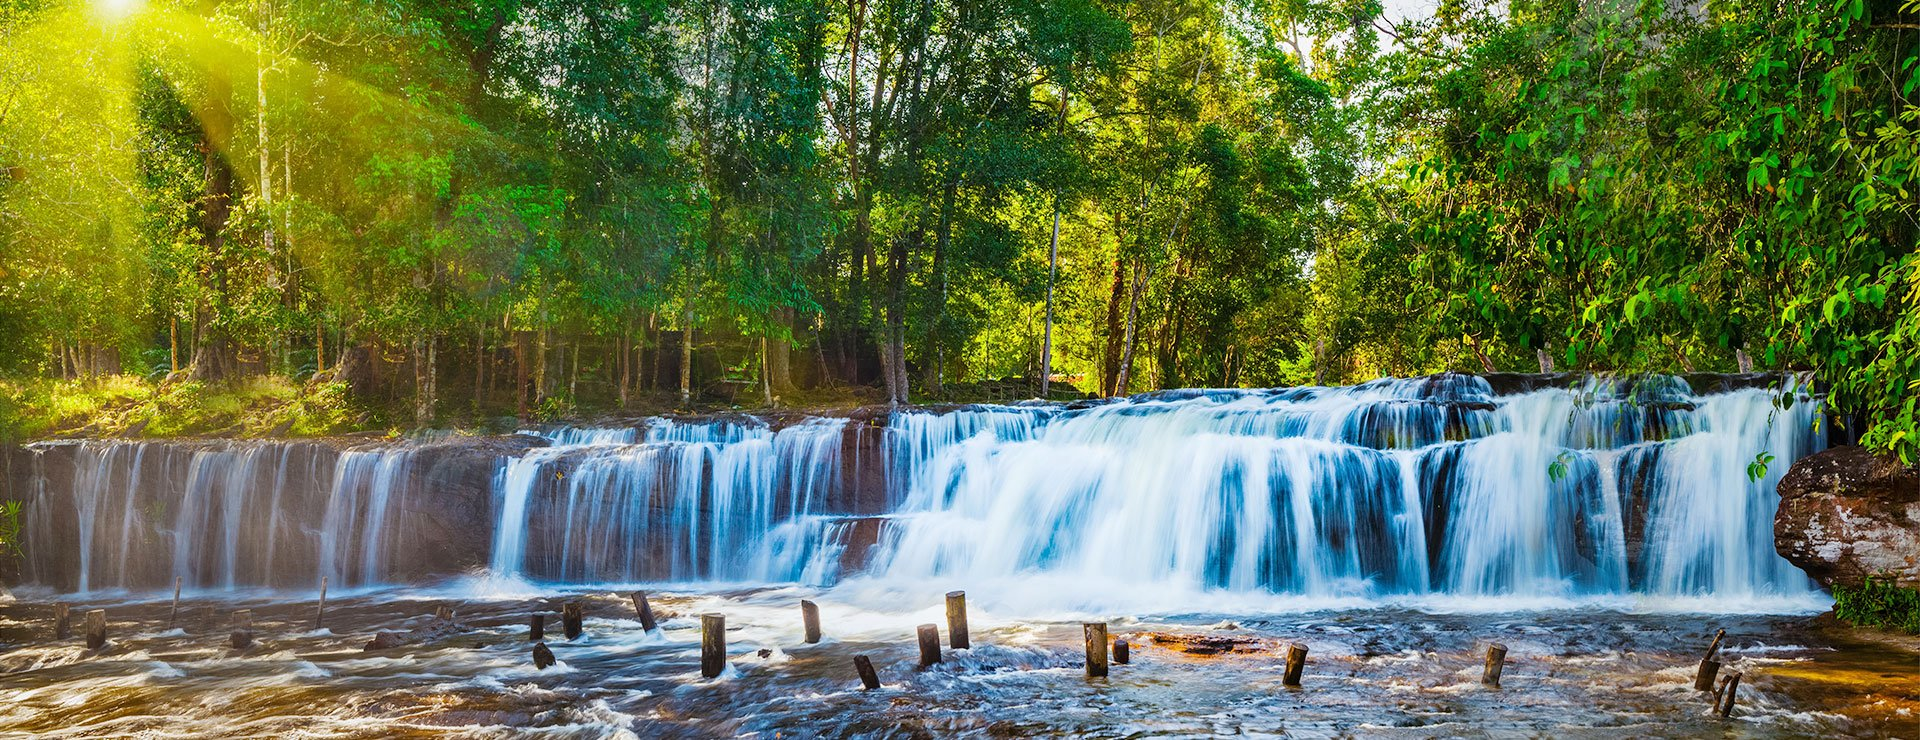 Top Unusual Experiences to Try While being in Siem Reap, Cambodia